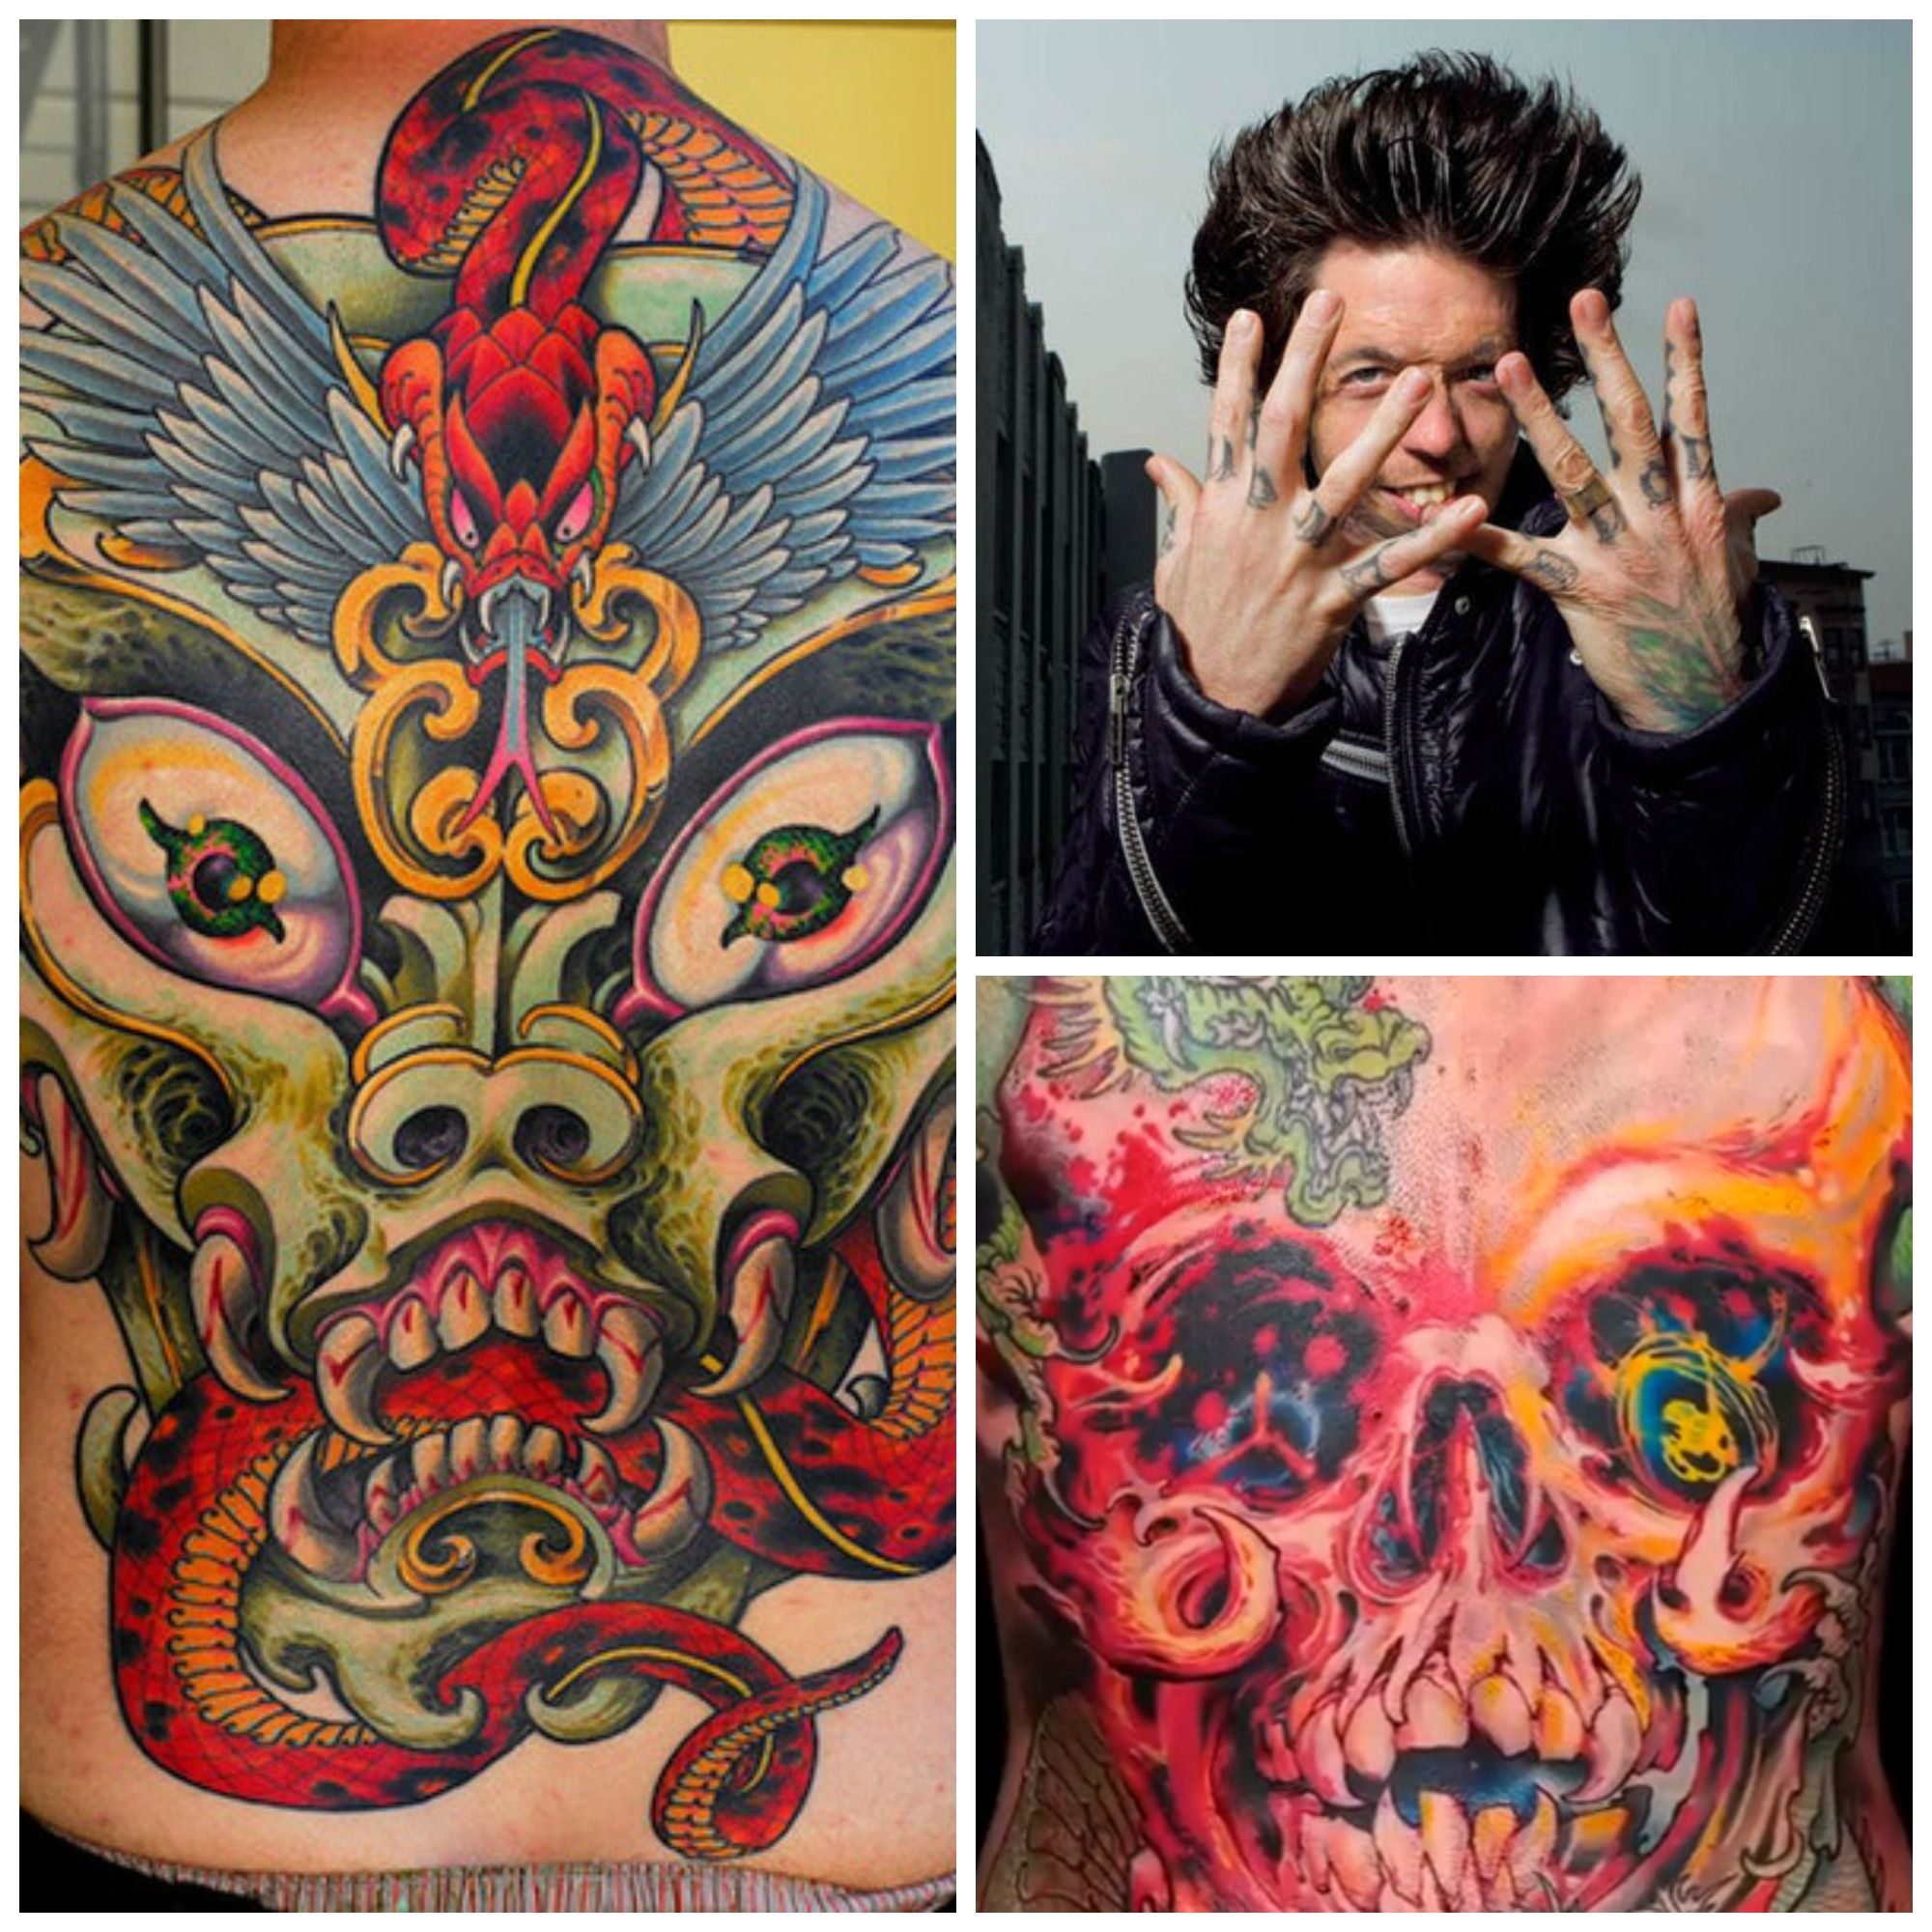 Grime tattoo collage skull bright colors snakes flowers tattoo